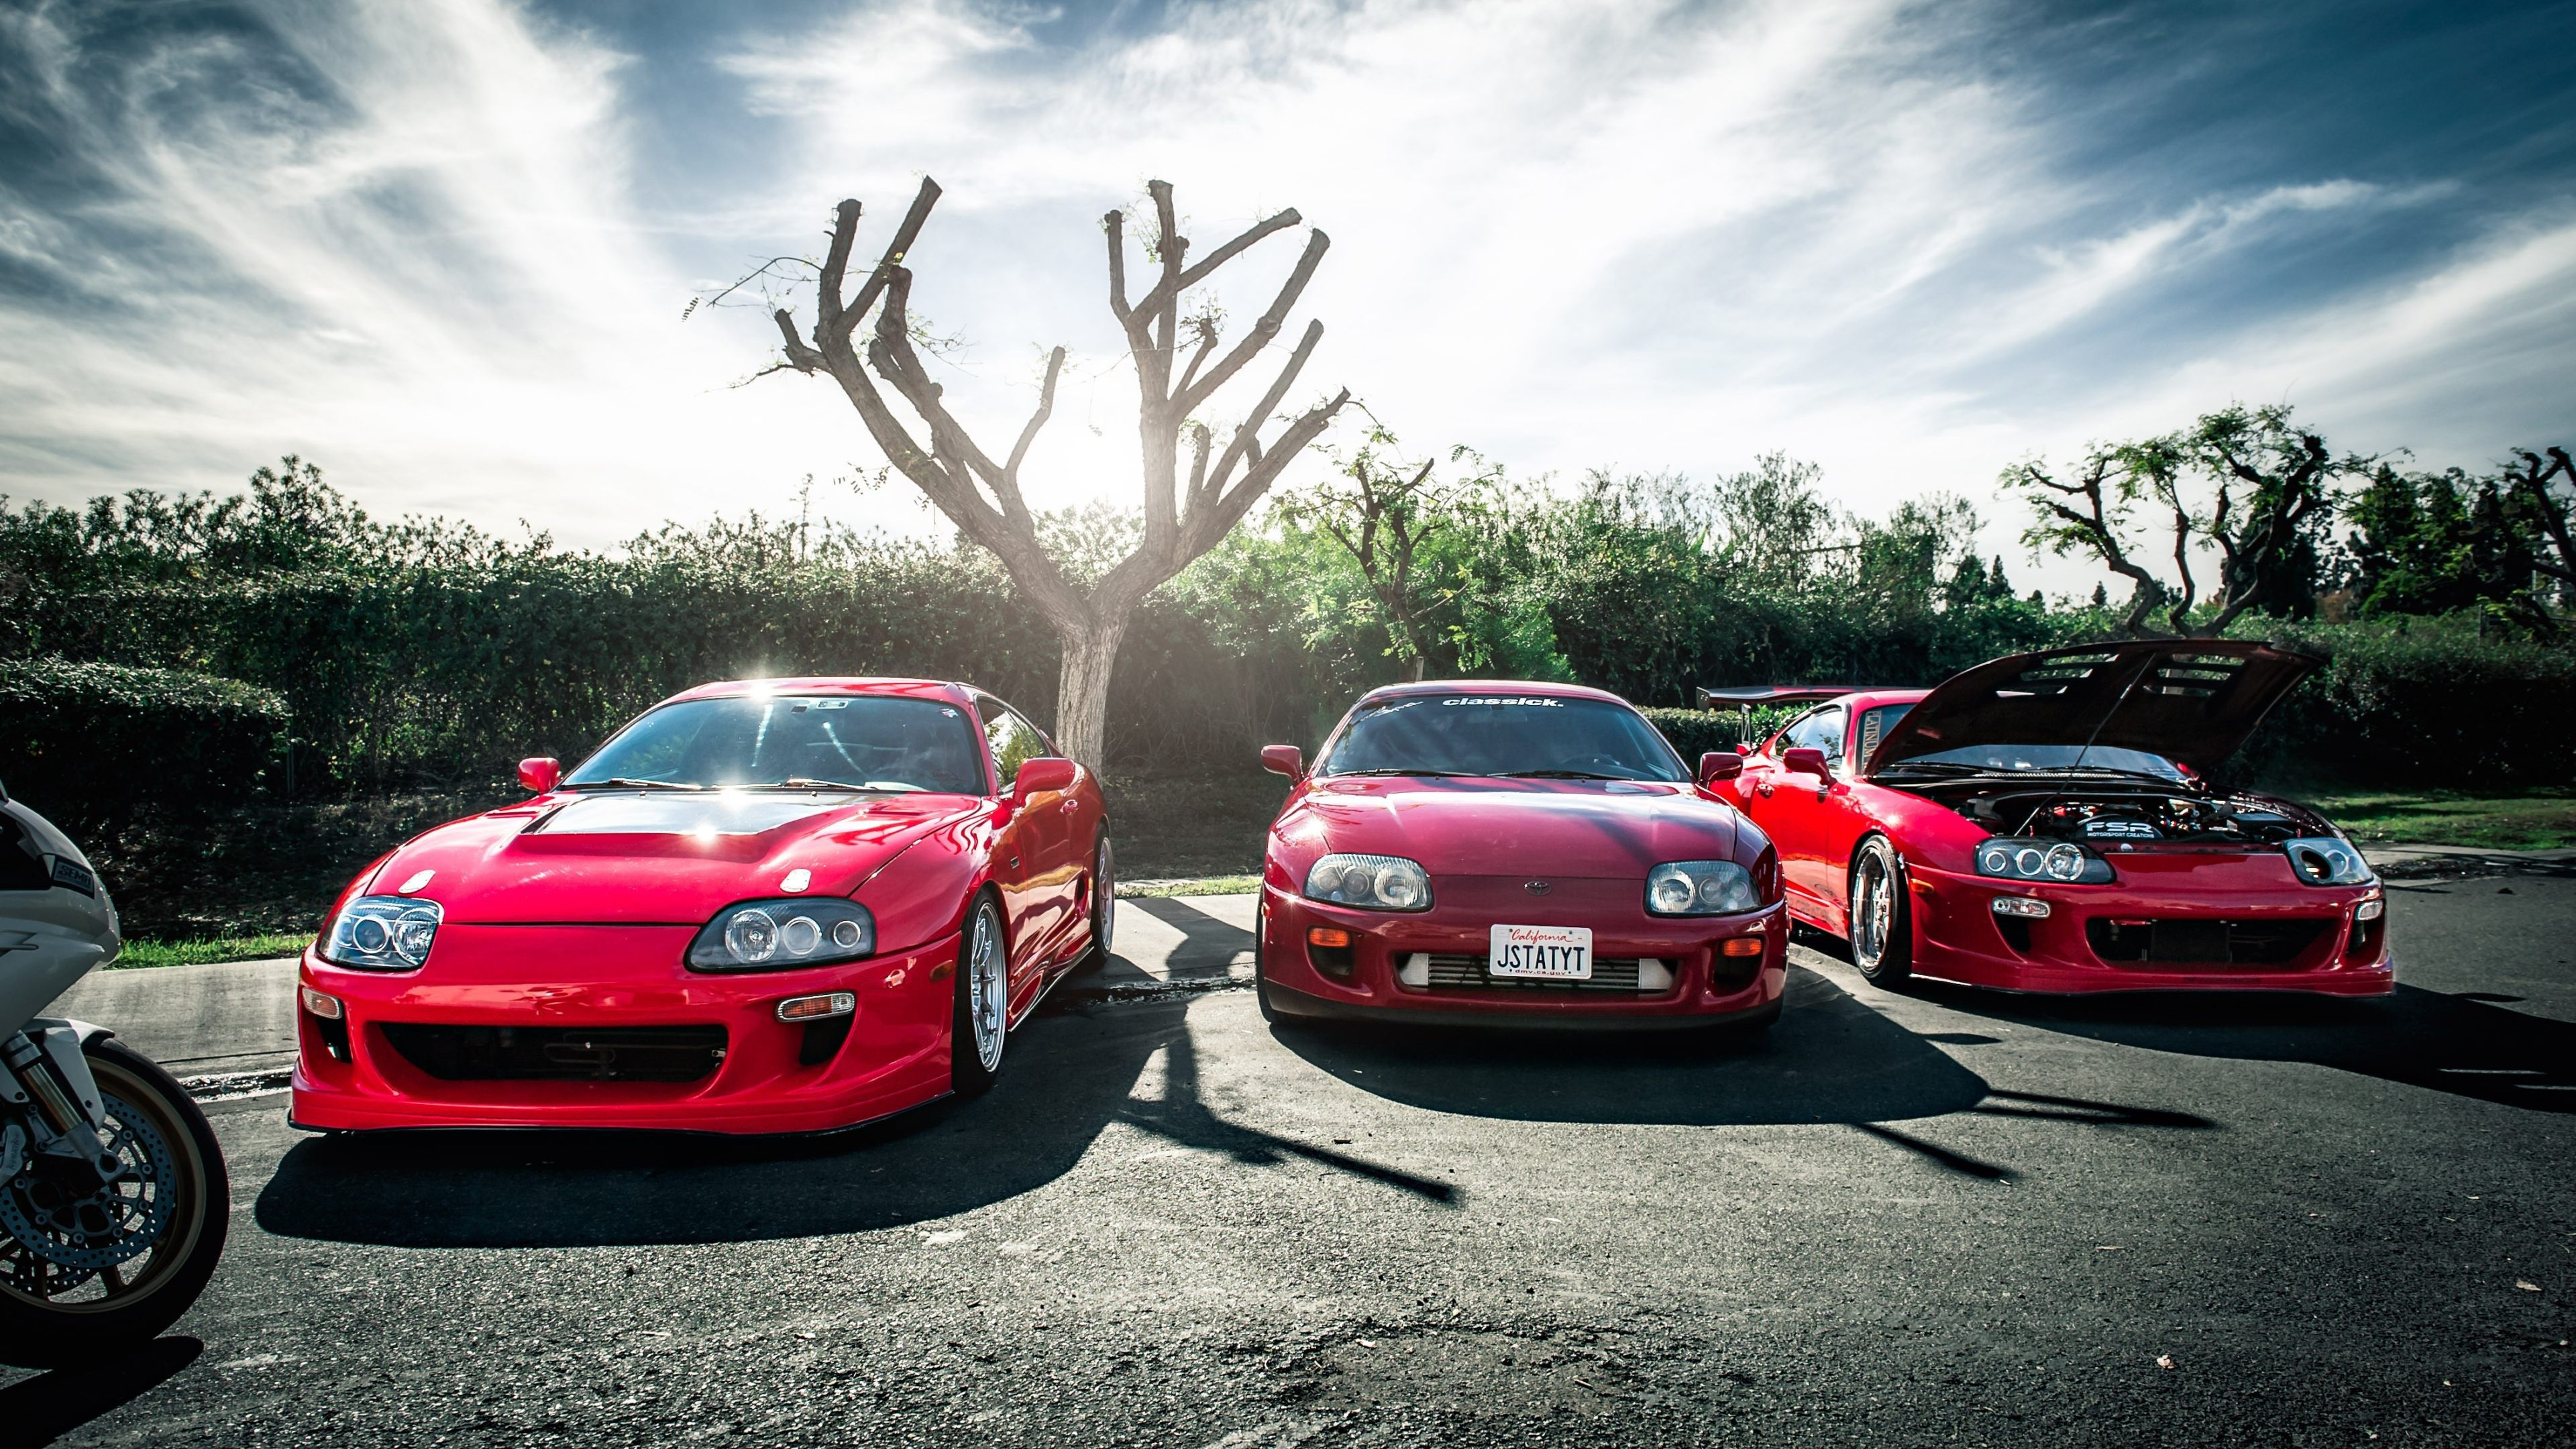 Supra Car Ultra Hd 4k Ultra Hd Wallpaper Ololoshenka Toyota